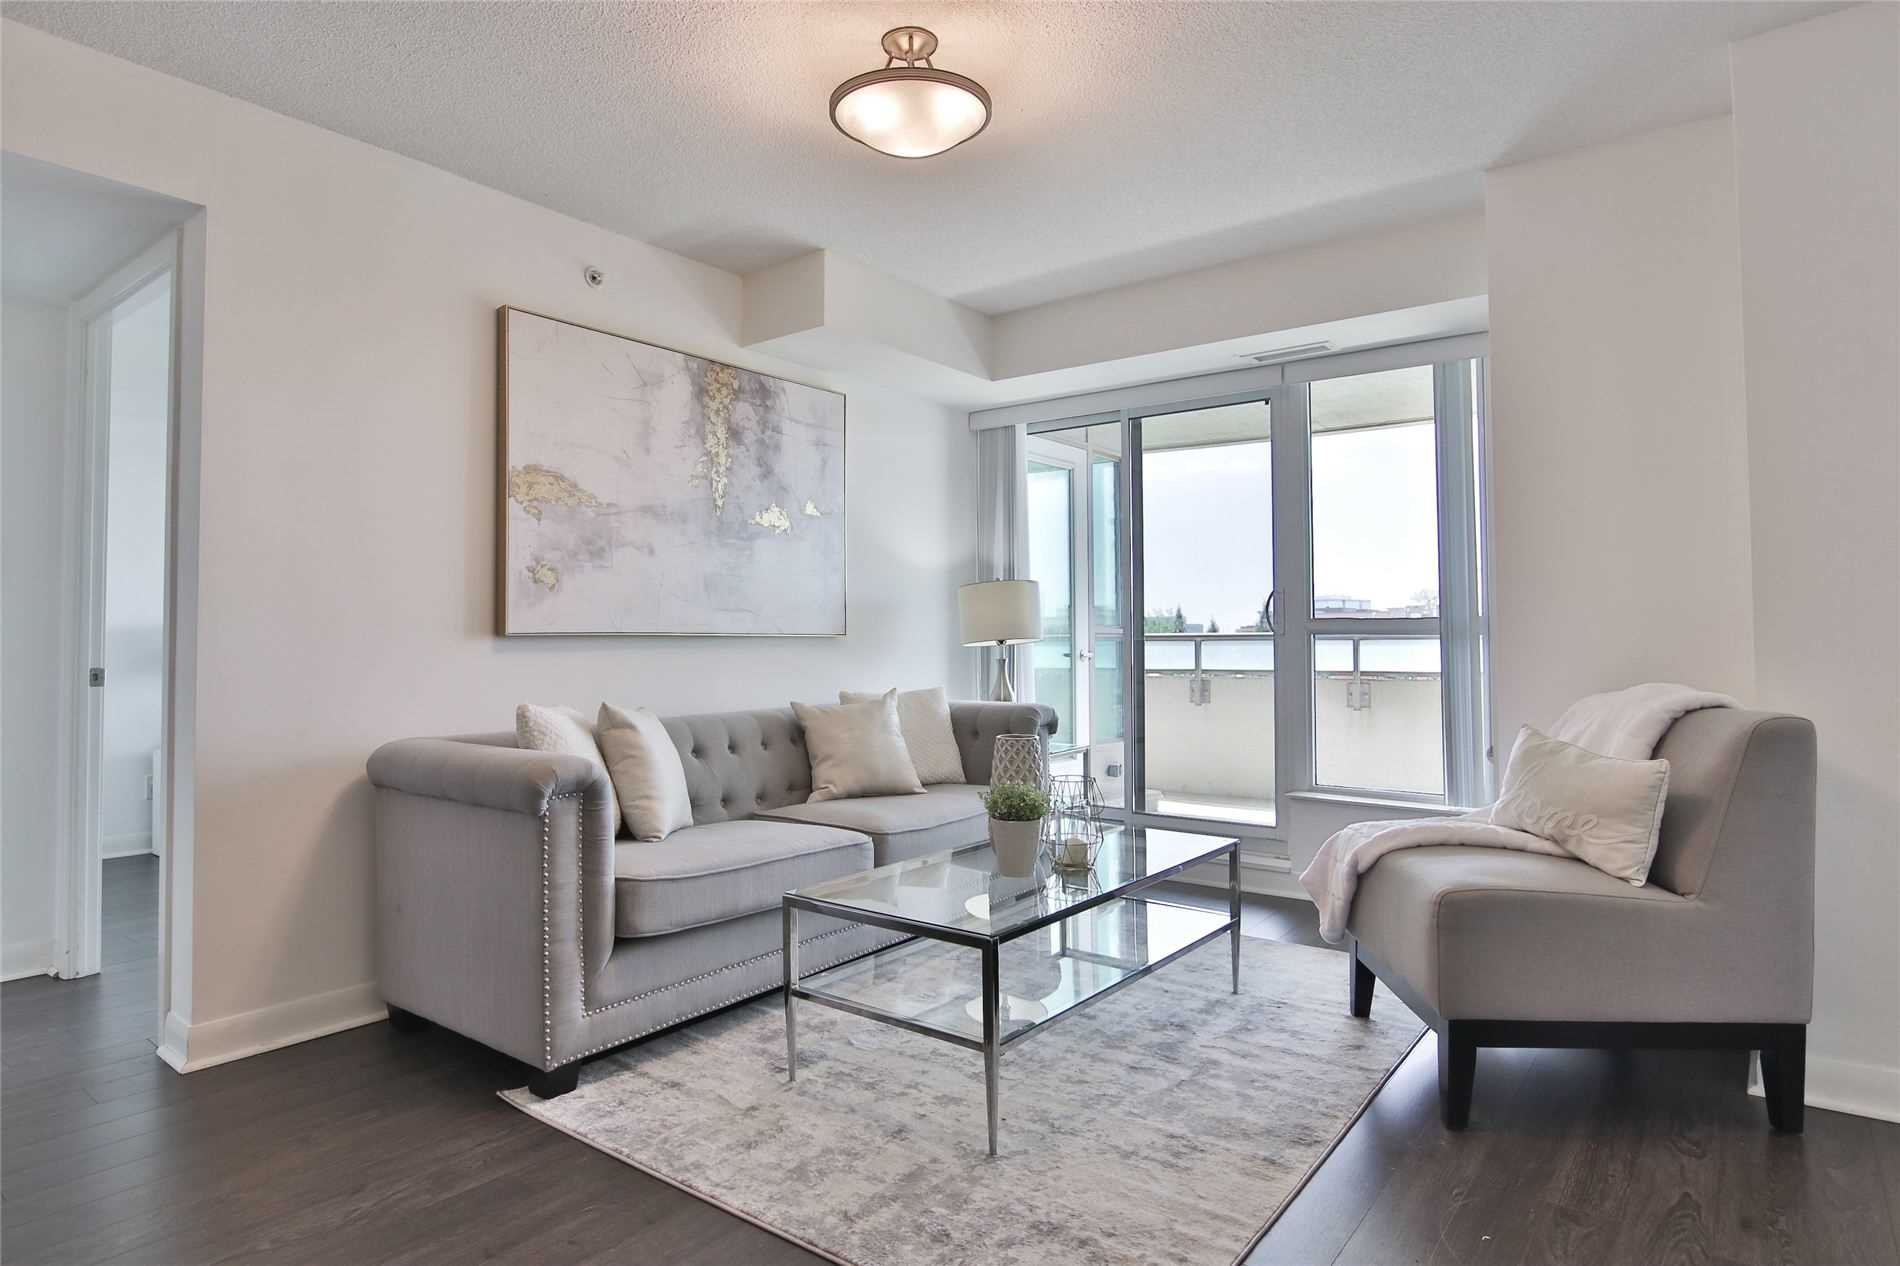 209 - 75 Norman Bethune Ave - Beaver Creek Business Park Condo Apt for sale, 2 Bedrooms (N5305489) - #6